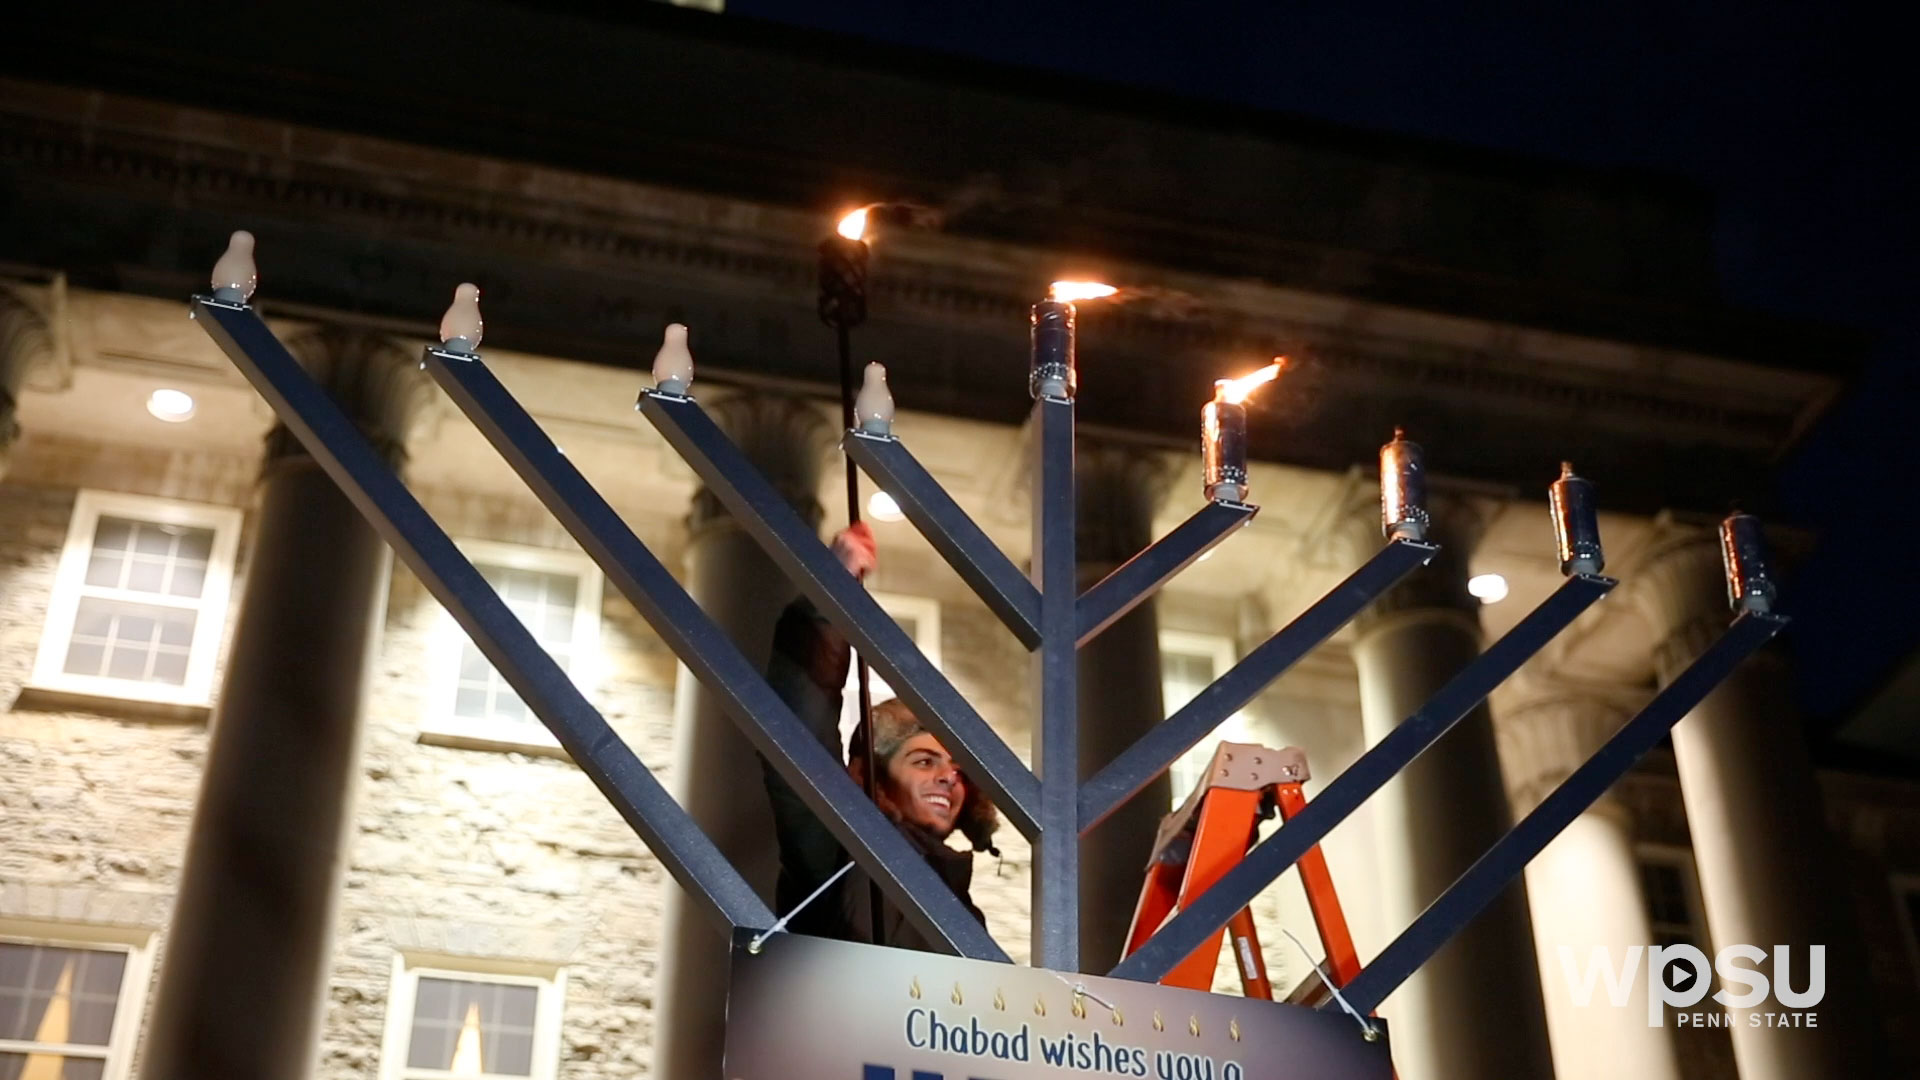 Chabad of Penn State Hosts Menorah Lighting